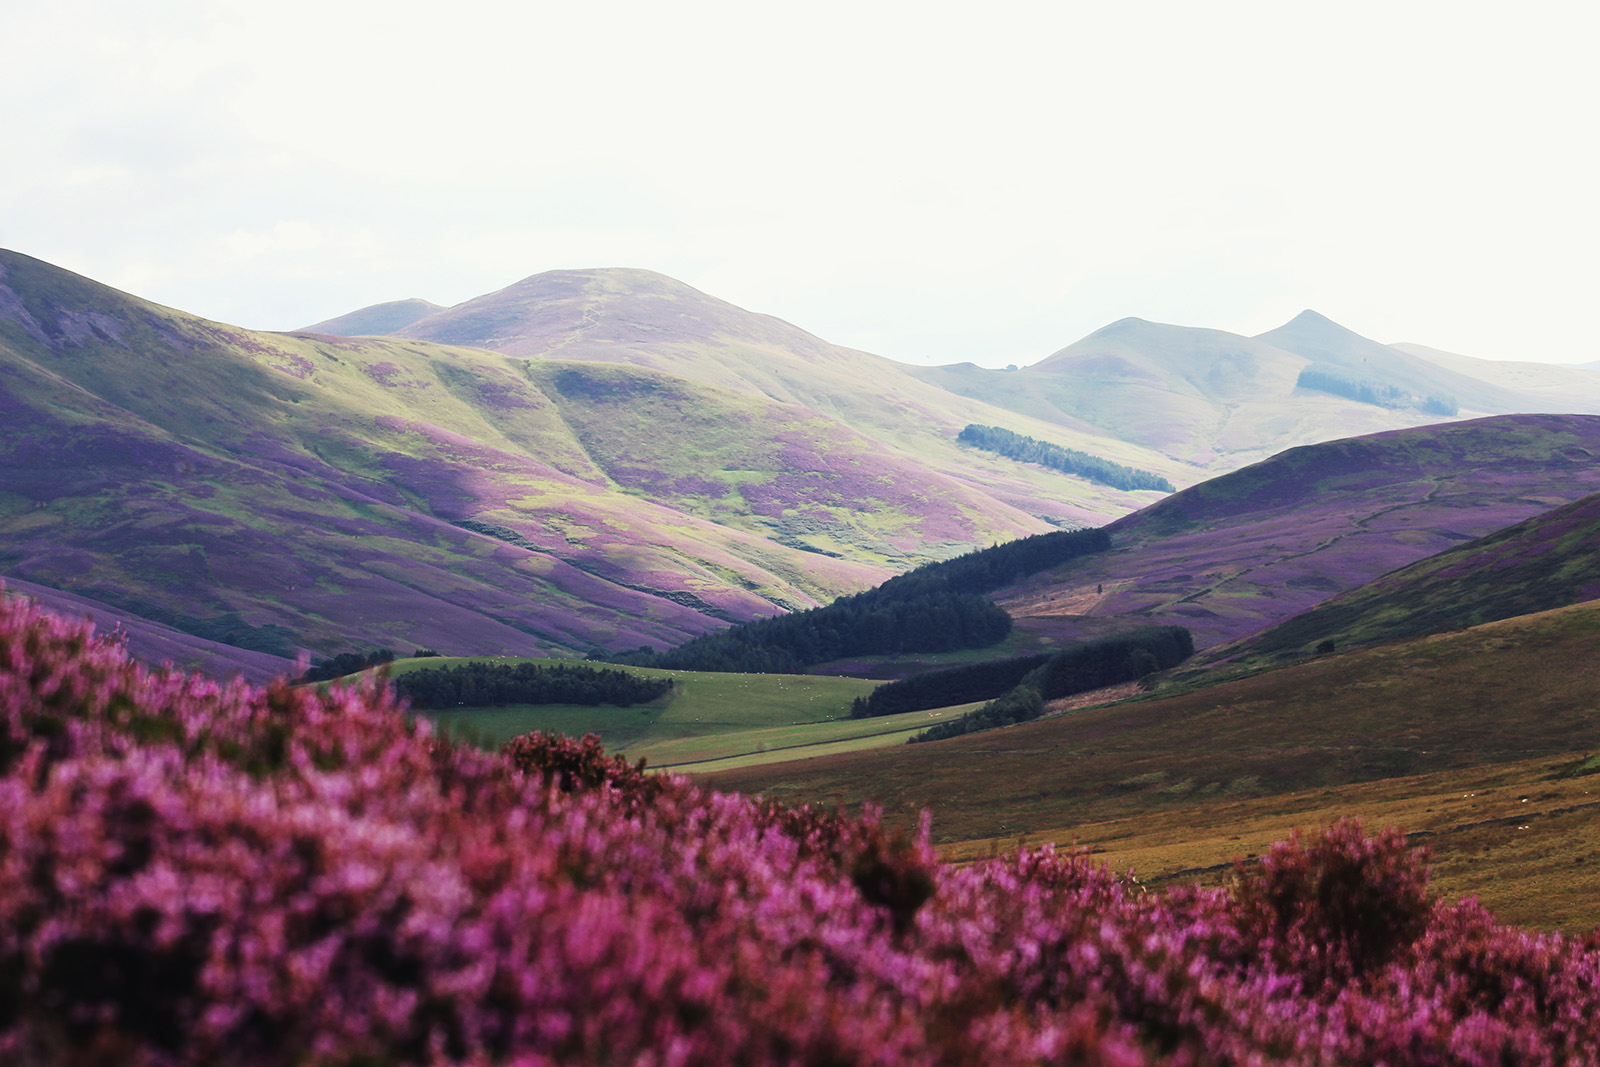 Hills in the Scottish countryside